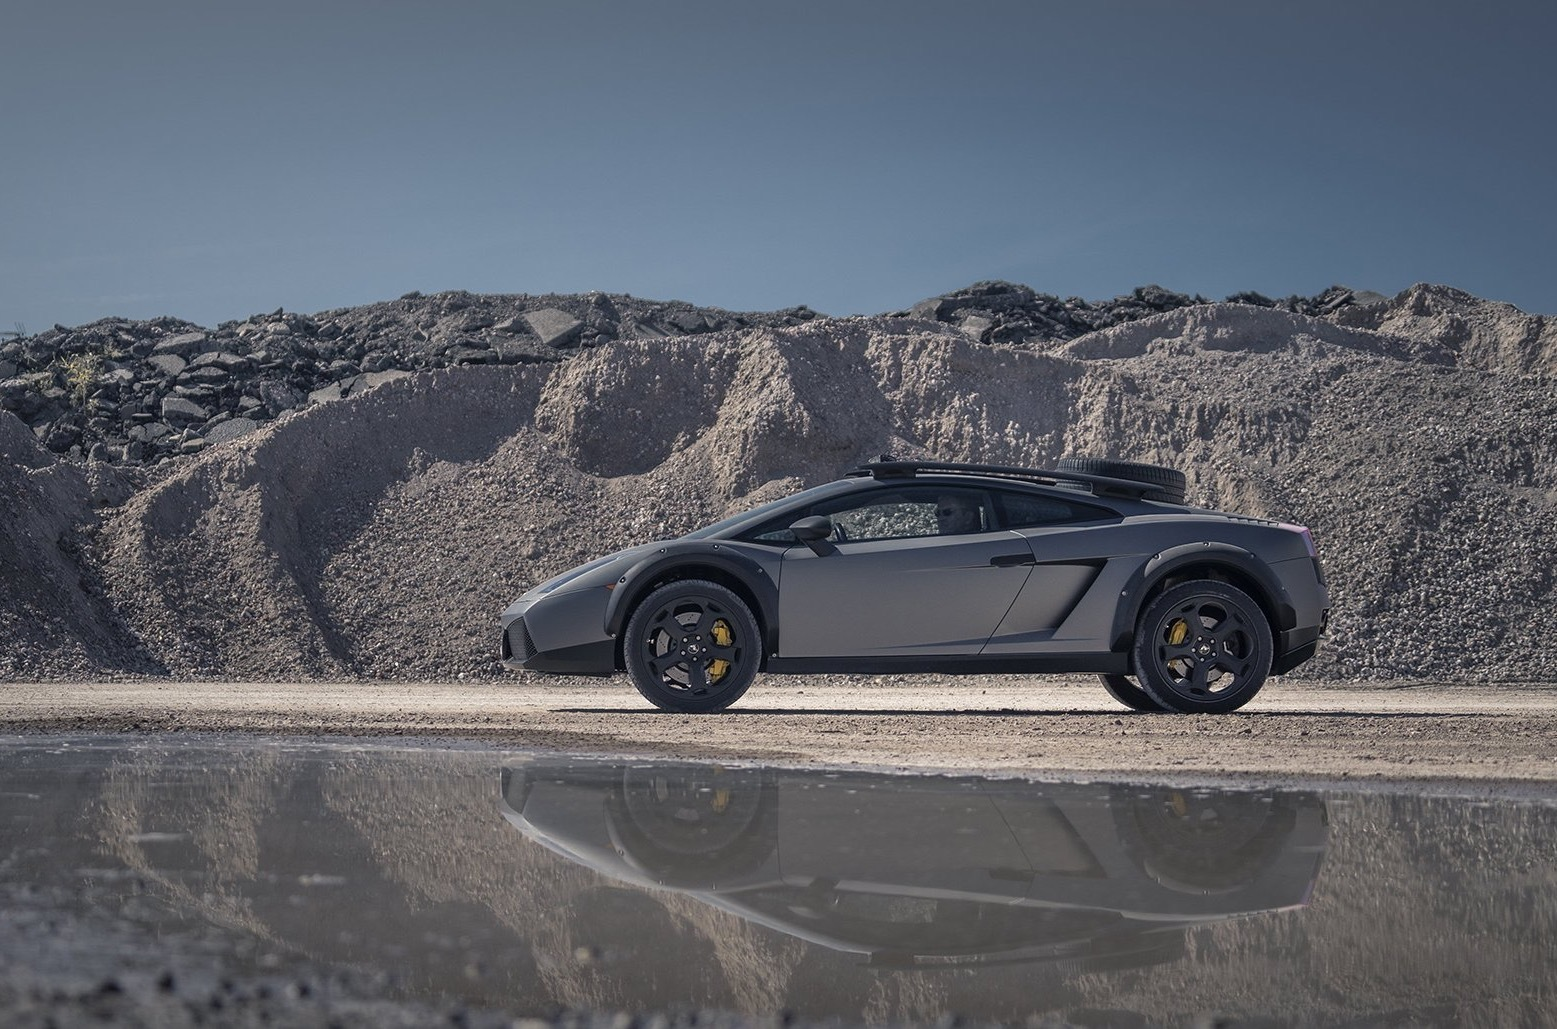 Classic Yountimer Consultancy, a Netherlands-based auto dealership, has expanded its assortment to include a hardcore off-road variant of the Lamborghini Gallardo. The car features a lift kit, plastic guard plates and a V10 under the hood, and comes priced at €115,000.